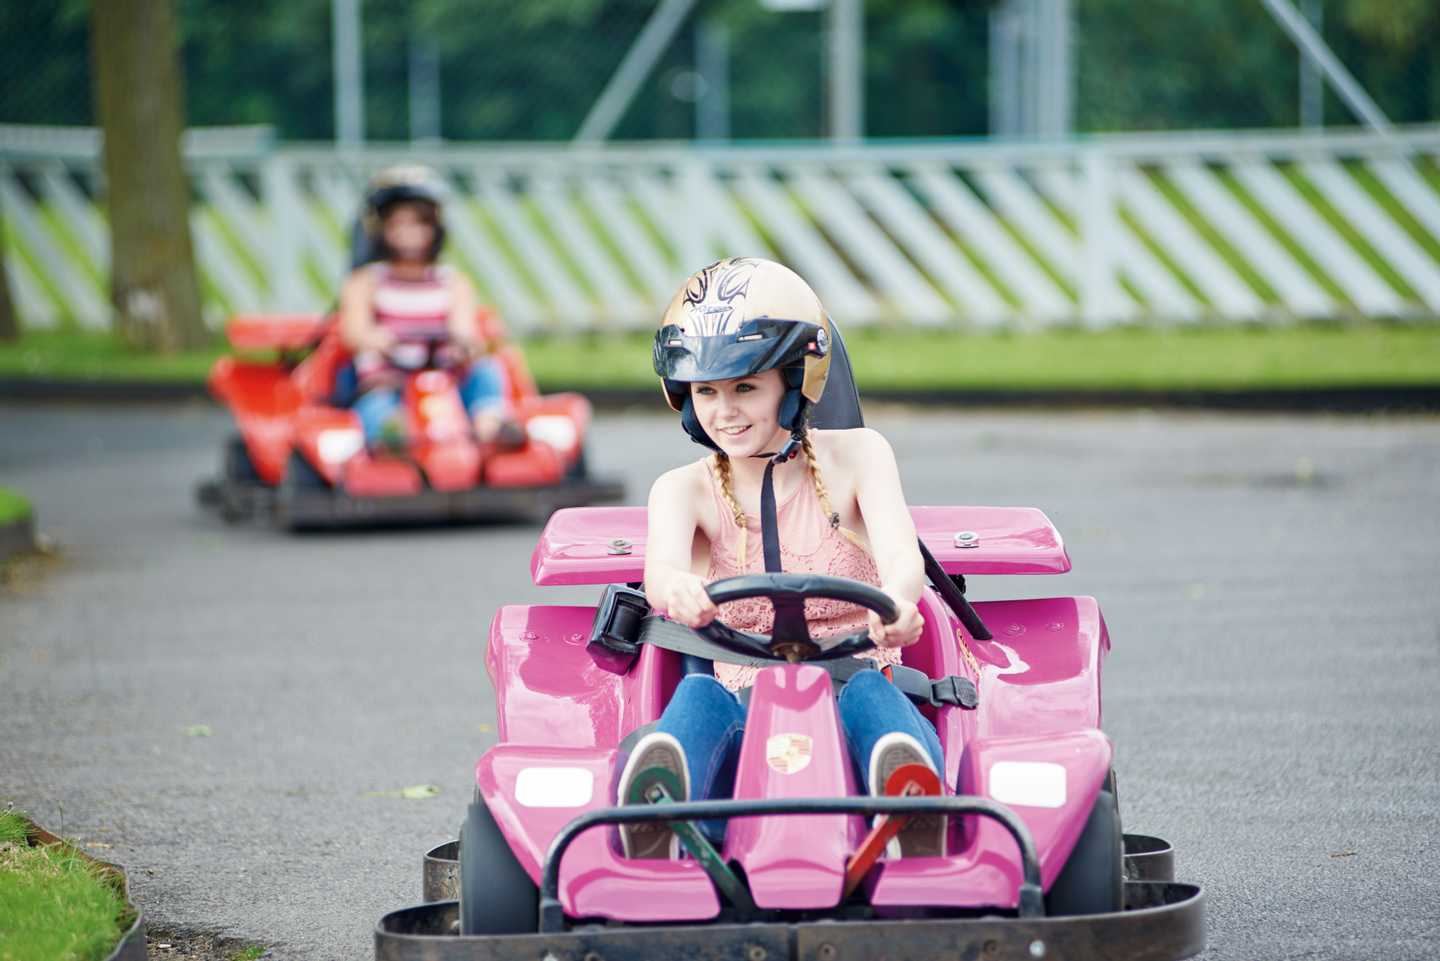 Children racing around the go-kart track